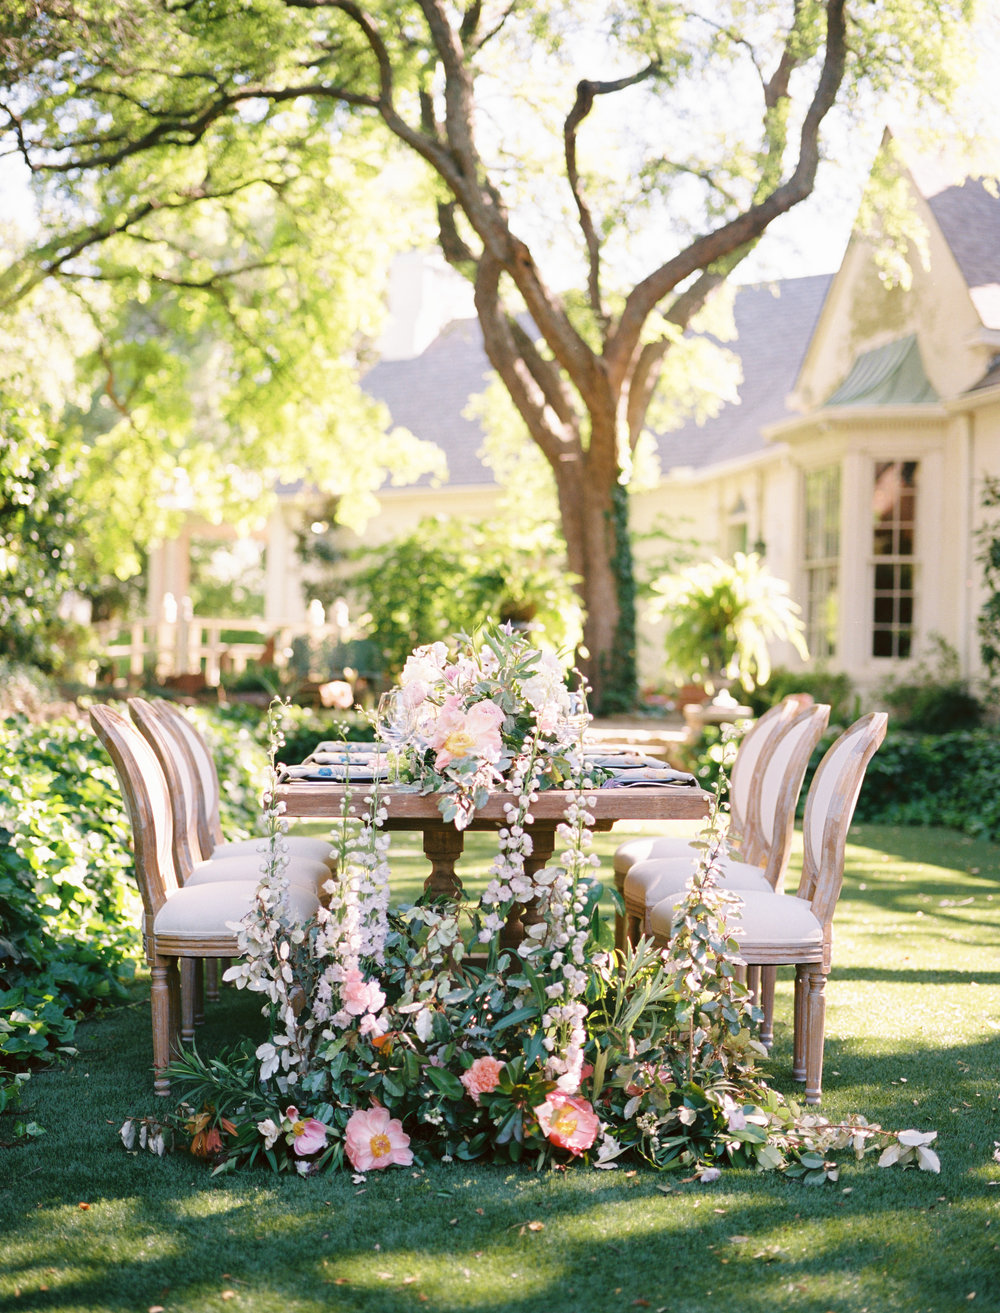 Elegant bohemian garden wedding inspiration featured in   Green Wedding Shoes